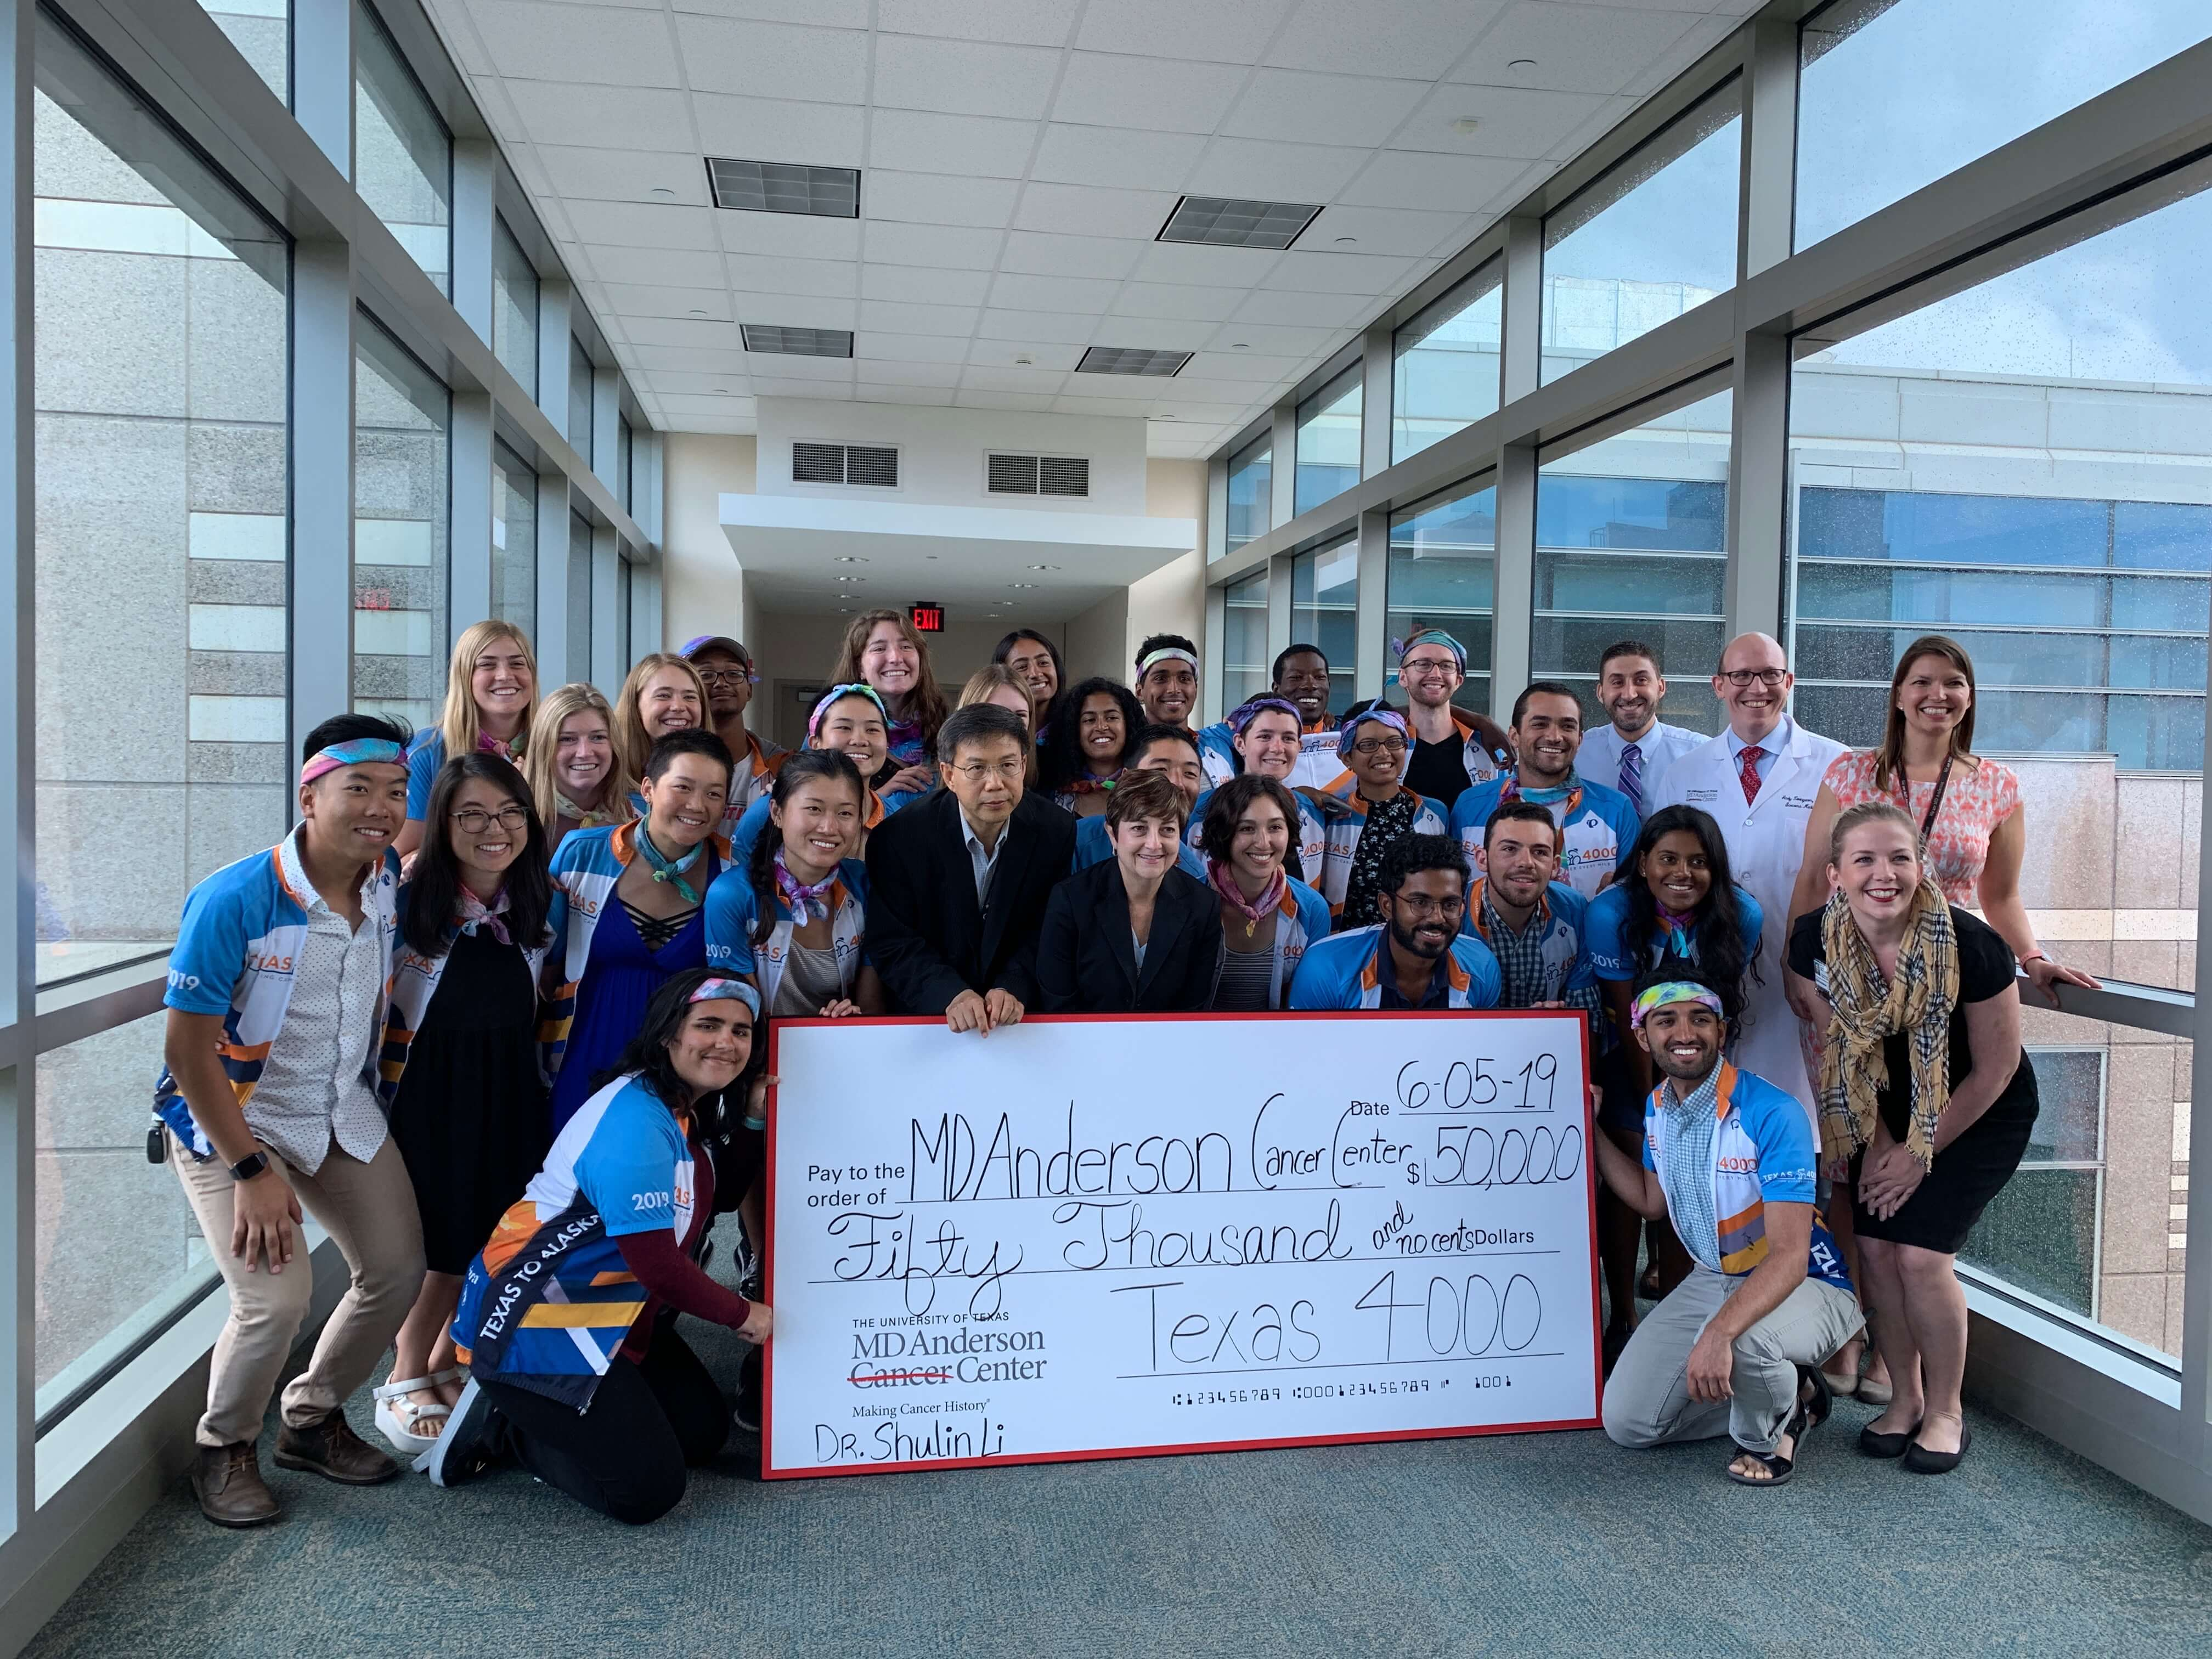 Texas 4000 riders present a $50,000 check to Shulin Li, Ph.D., to continue his research in circulating tumor cells on June 5, 2019.